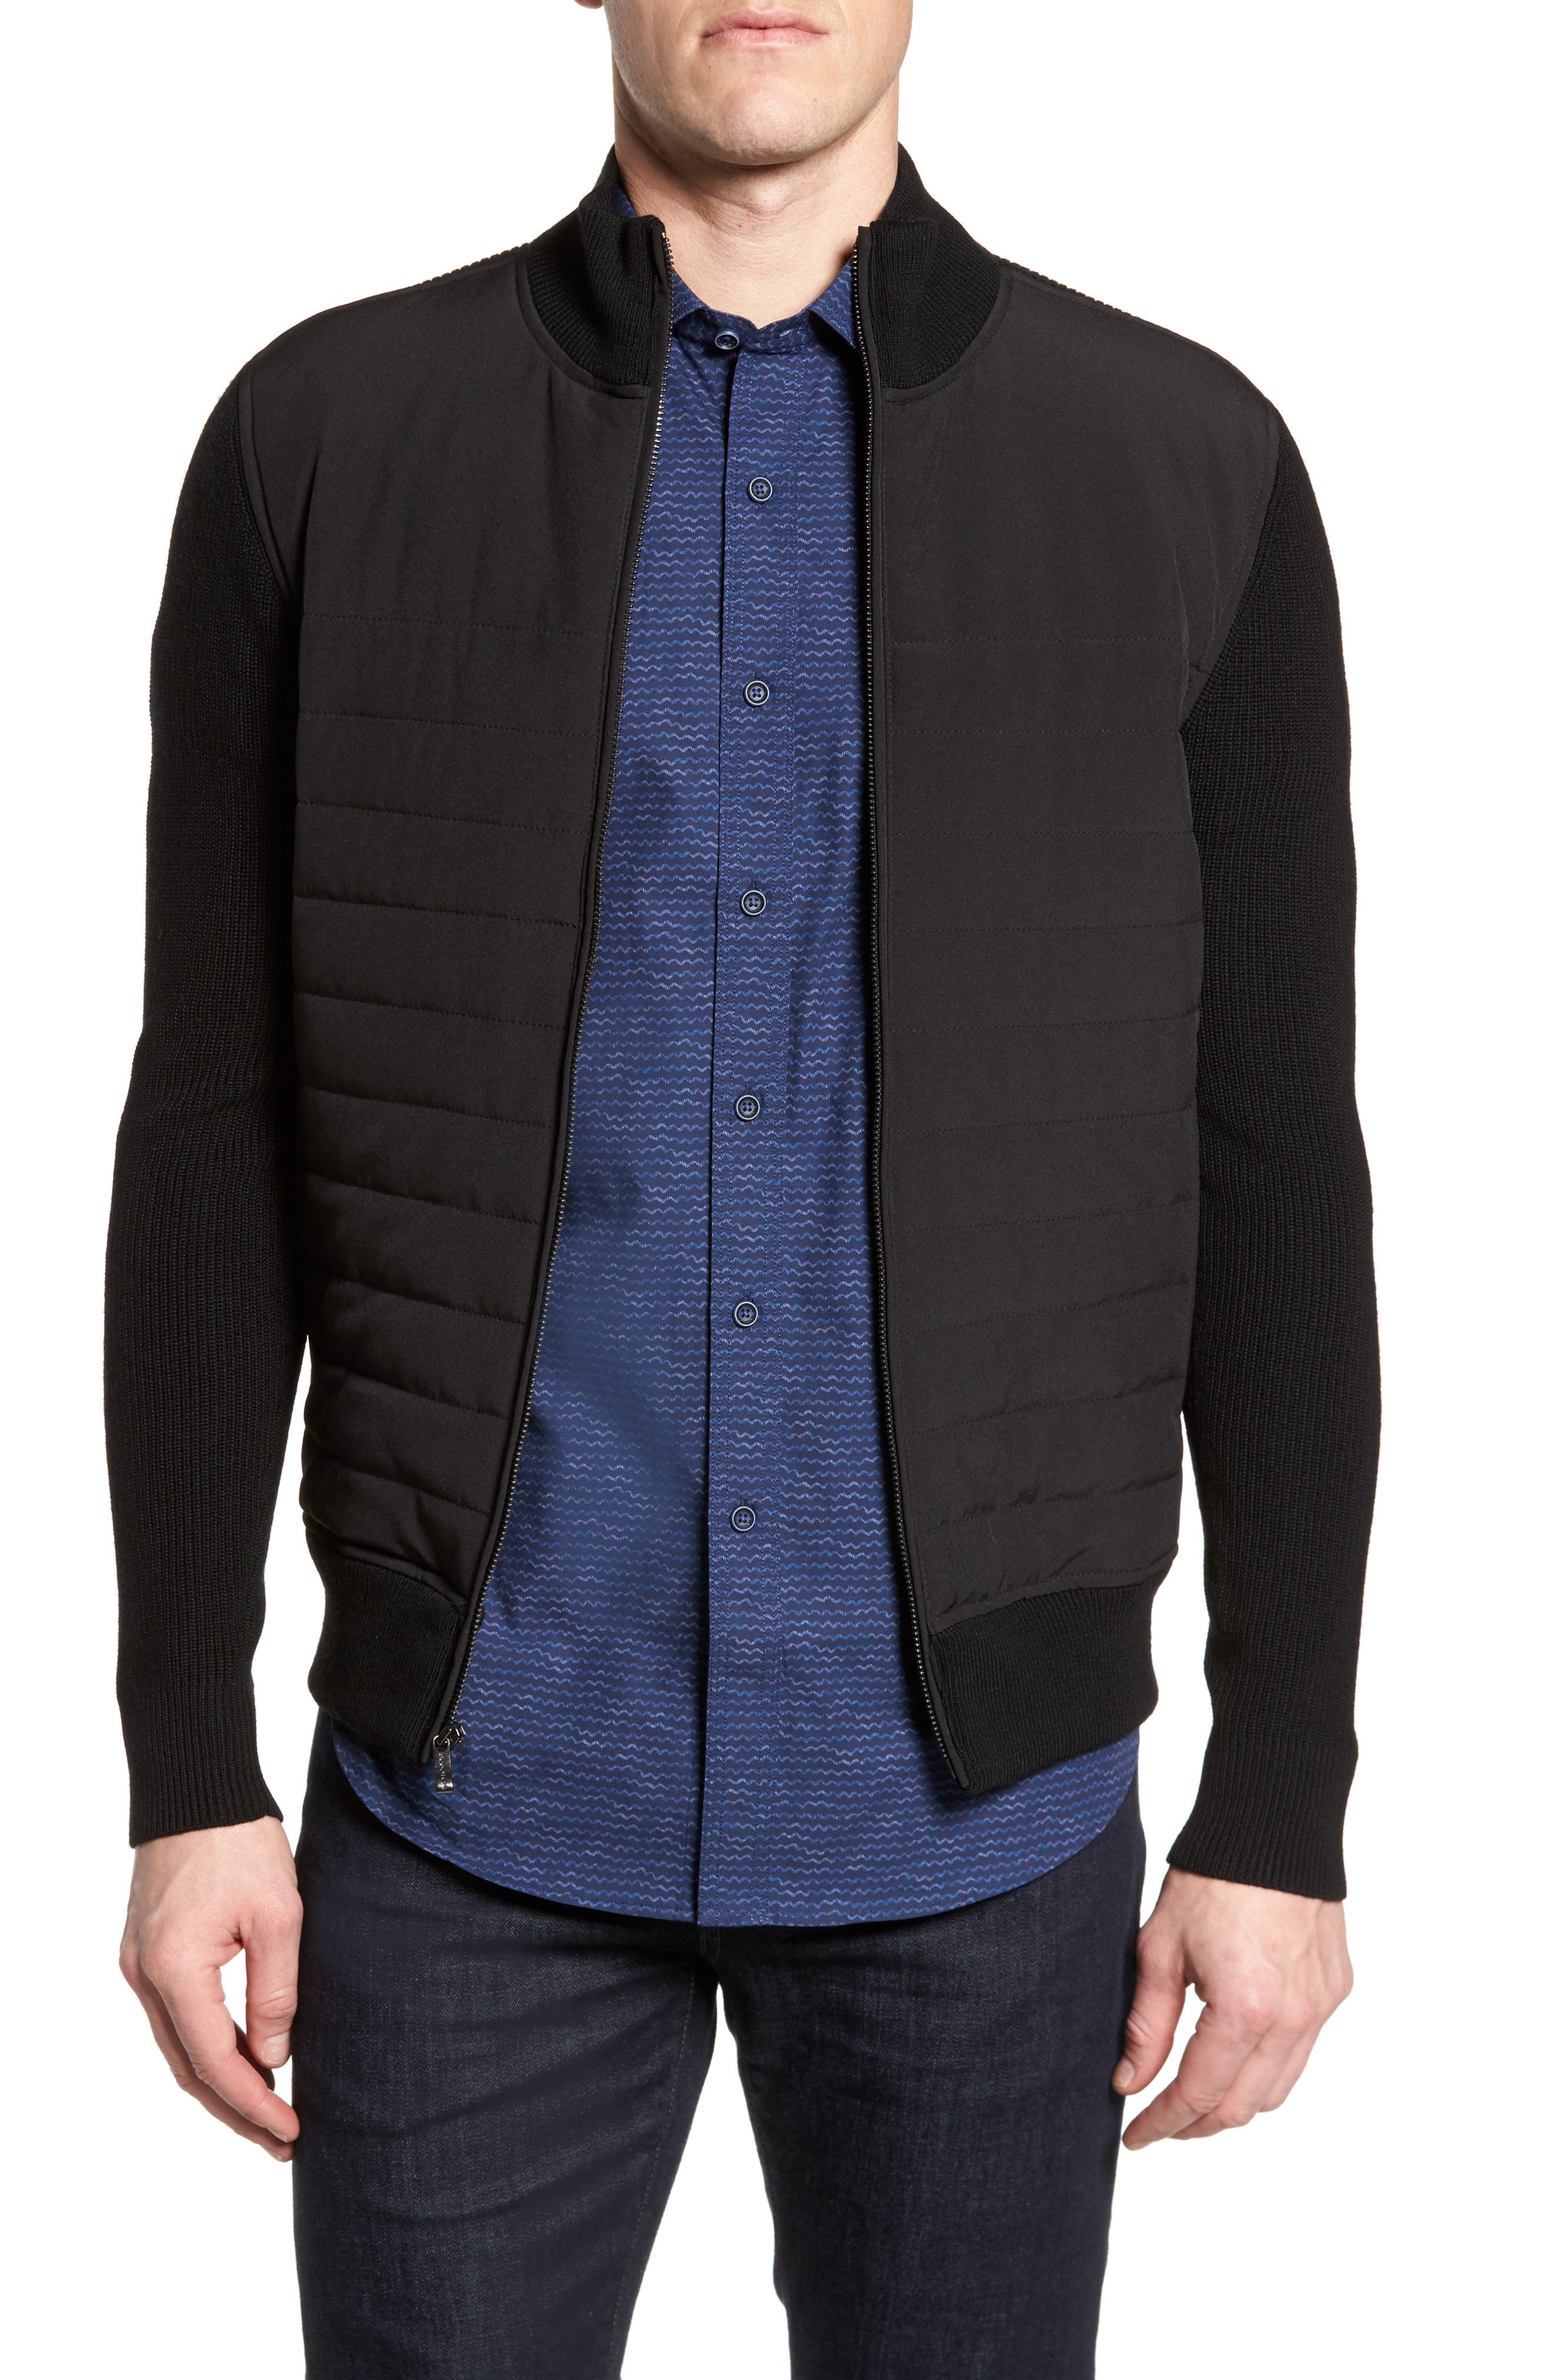 Quilted Front Wool Zip Front Sweater Jacket,                         Main,                         color, Black